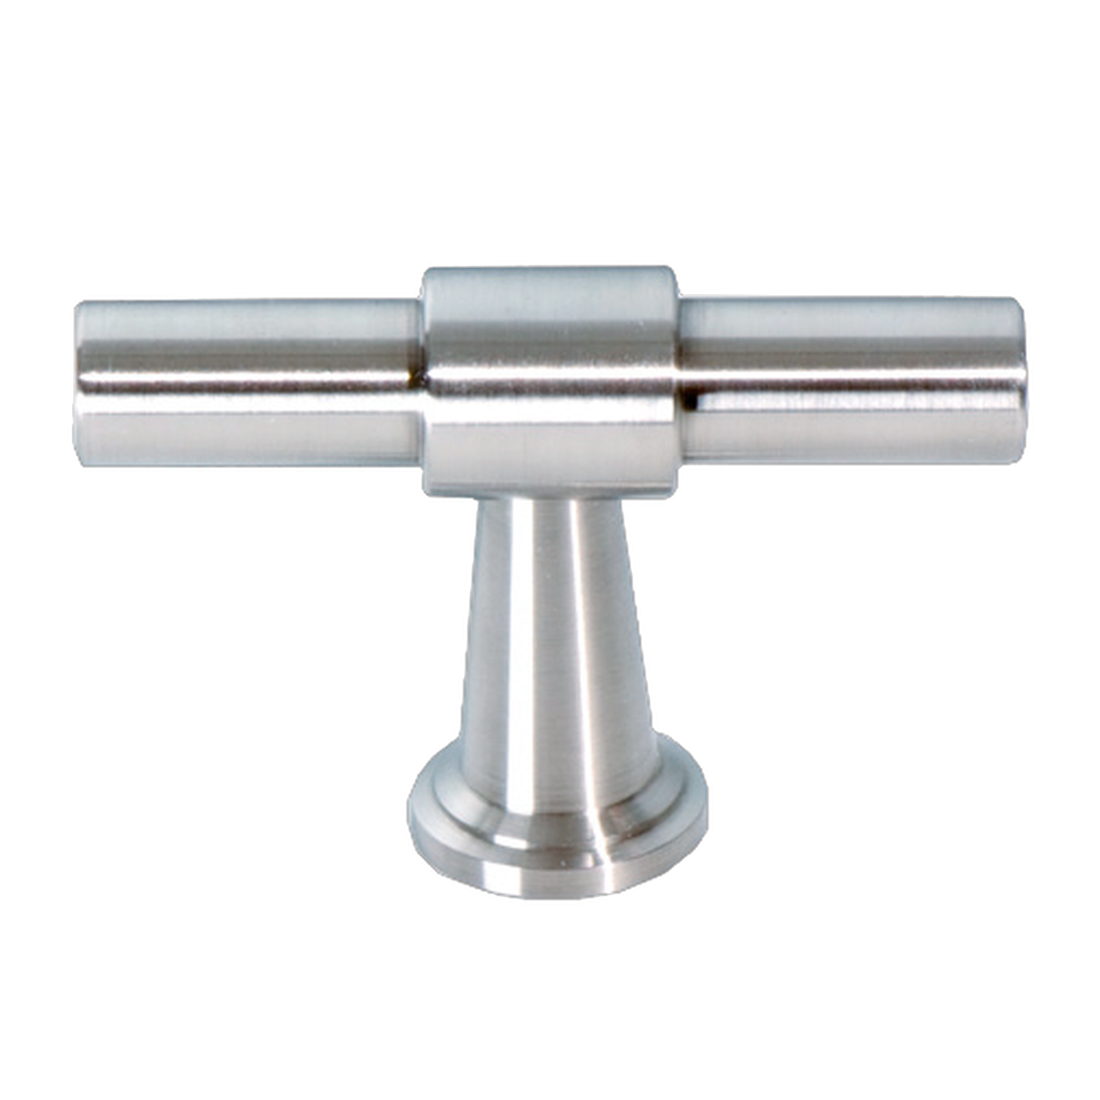 FURNITURE KNOB COMO 10/14MM, SATIN STAINLESS STEEL